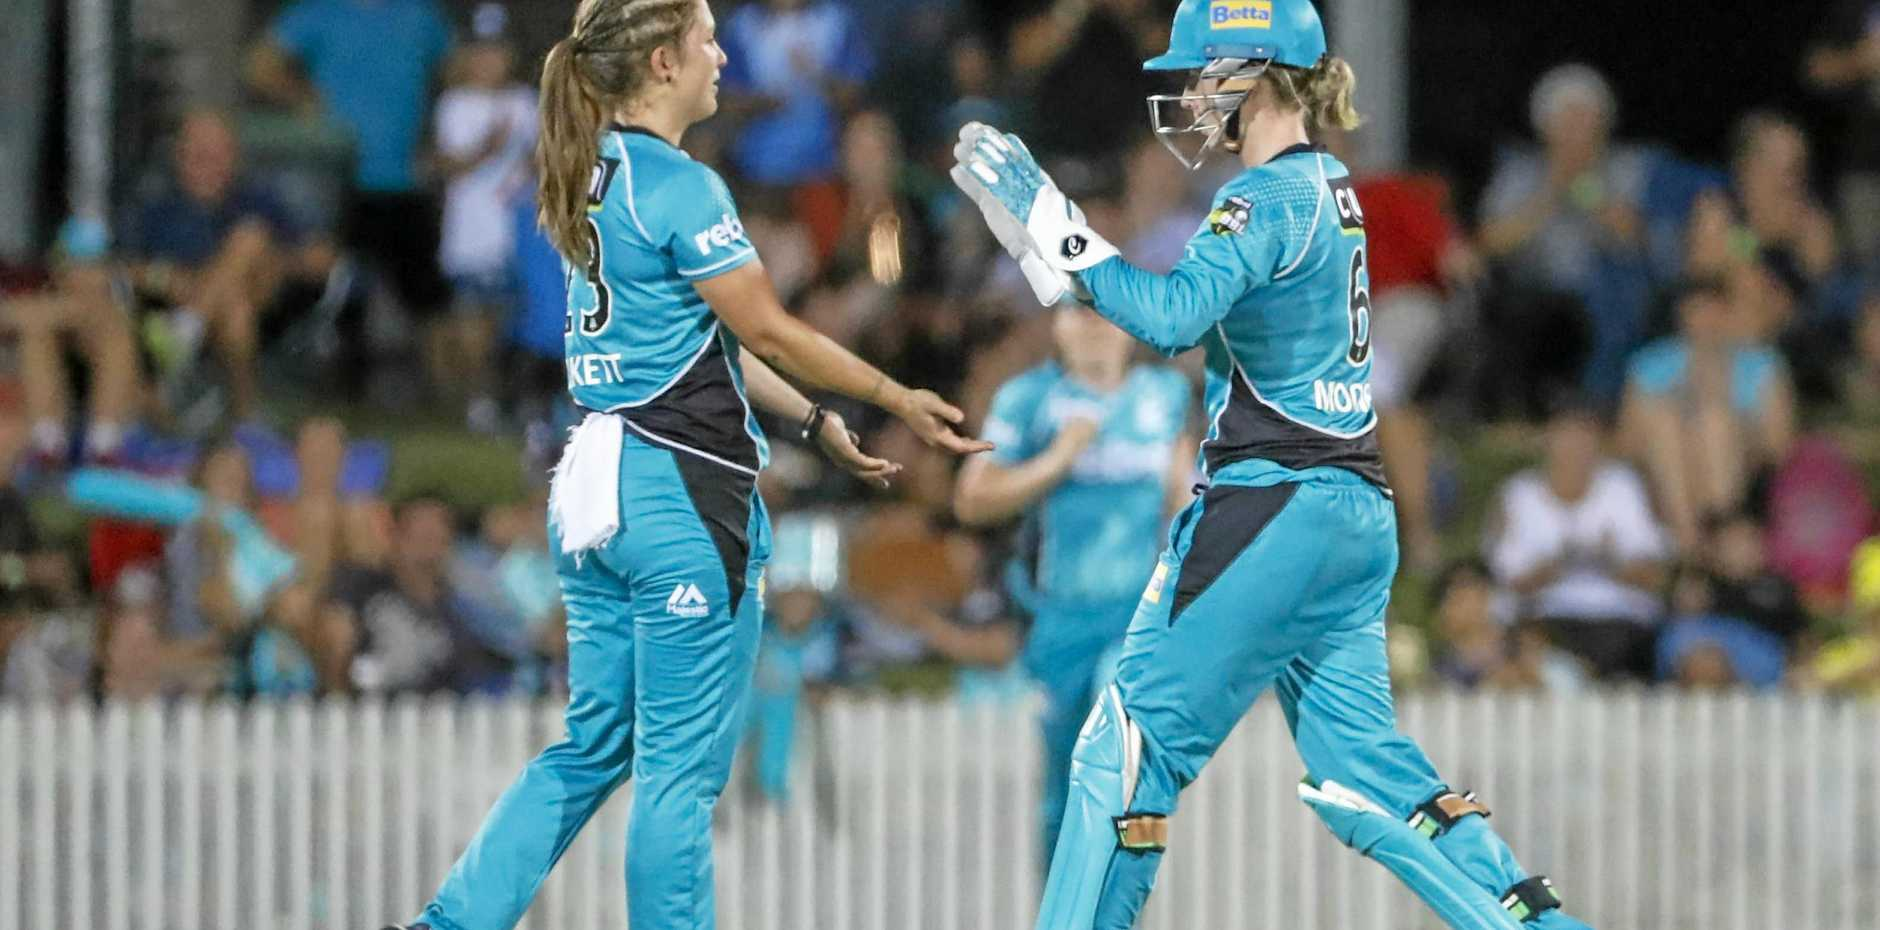 Hailed Burkett (left) of the Heat and Beth Mooney (right) of the Heat celebrate the wicket of Katie Mack of the Stars during the Womens Big Bash League (WBBL) cricket match between Brisbane Heat and Melbourne Stars at Harrup Park, Mackay on Friday, January 12.